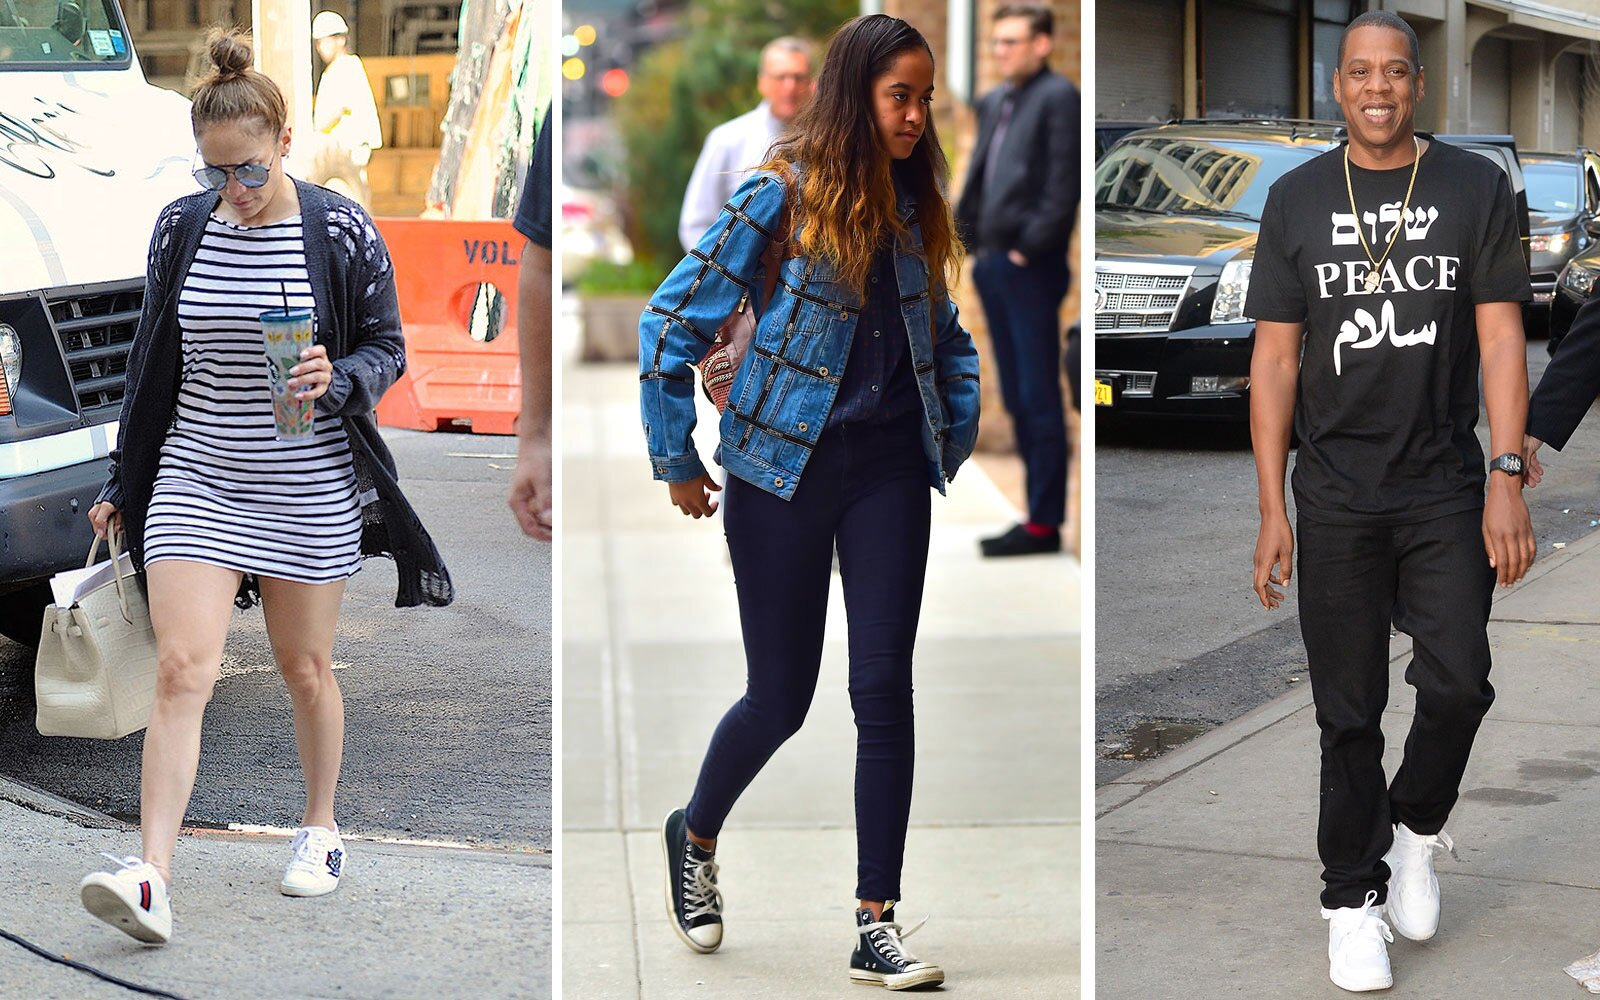 ed2e6f426 14 Sneakers Celebrities Love to Wear on the Go | Travel + Leisure